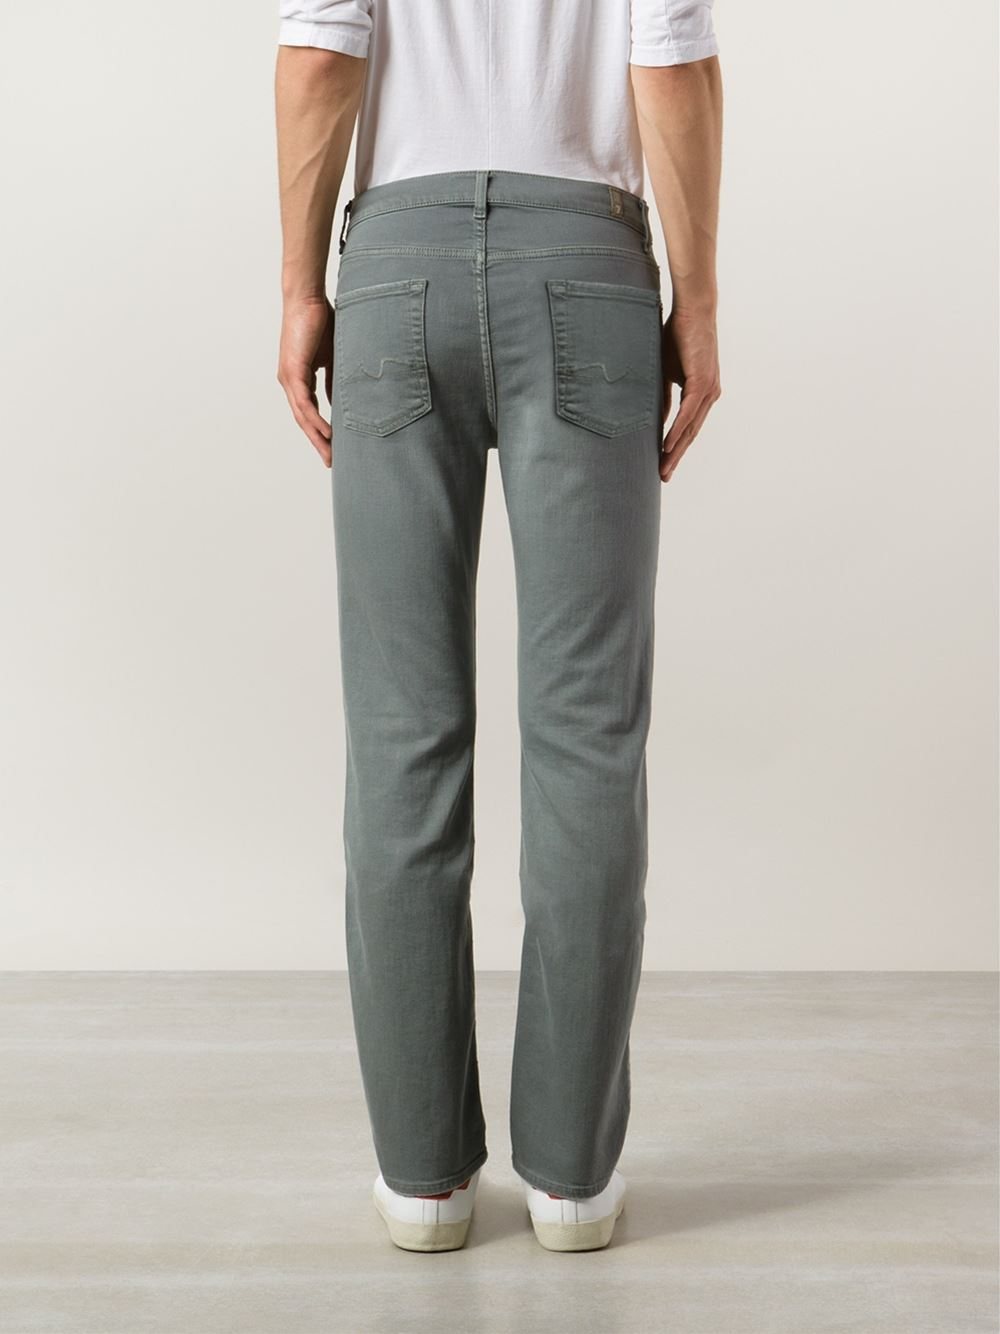 7 for all mankind 'The Slimmy' Jeans in Gray for Men | Lyst